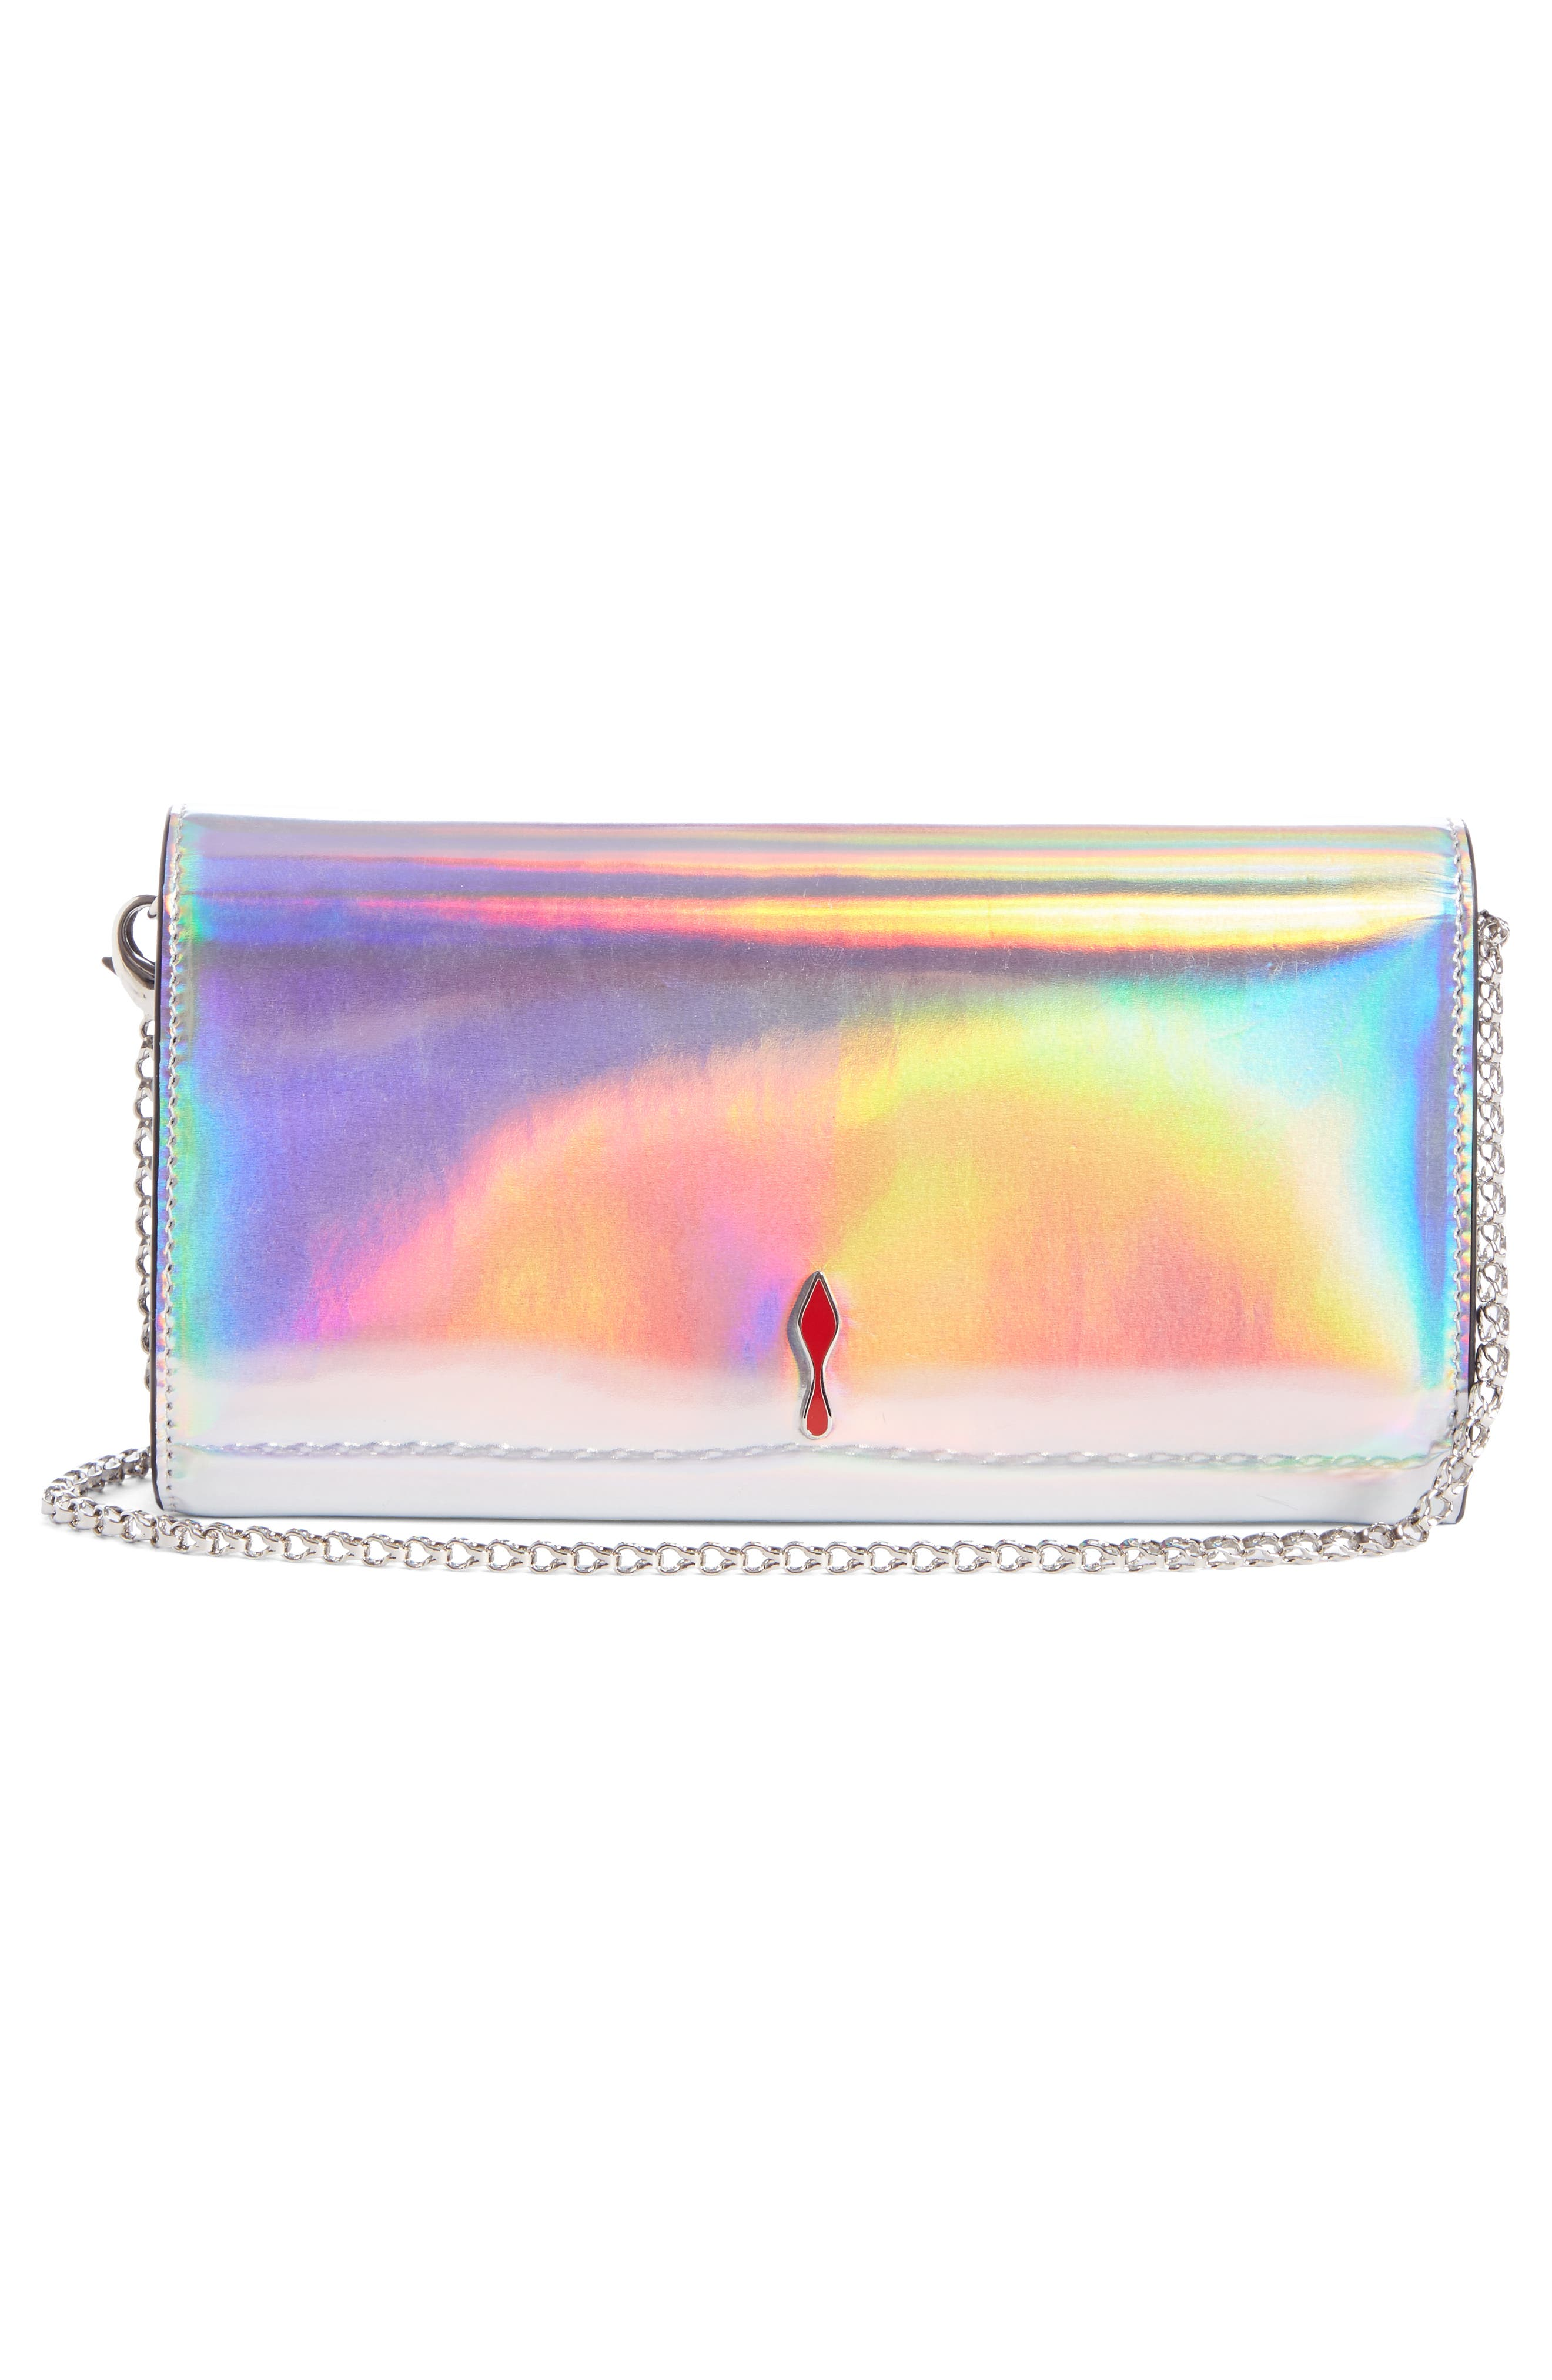 CHRISTIAN LOUBOUTIN, Boudoir Metallic Leather Wallet on a Chain, Alternate thumbnail 2, color, SILVER/ SILVER AB